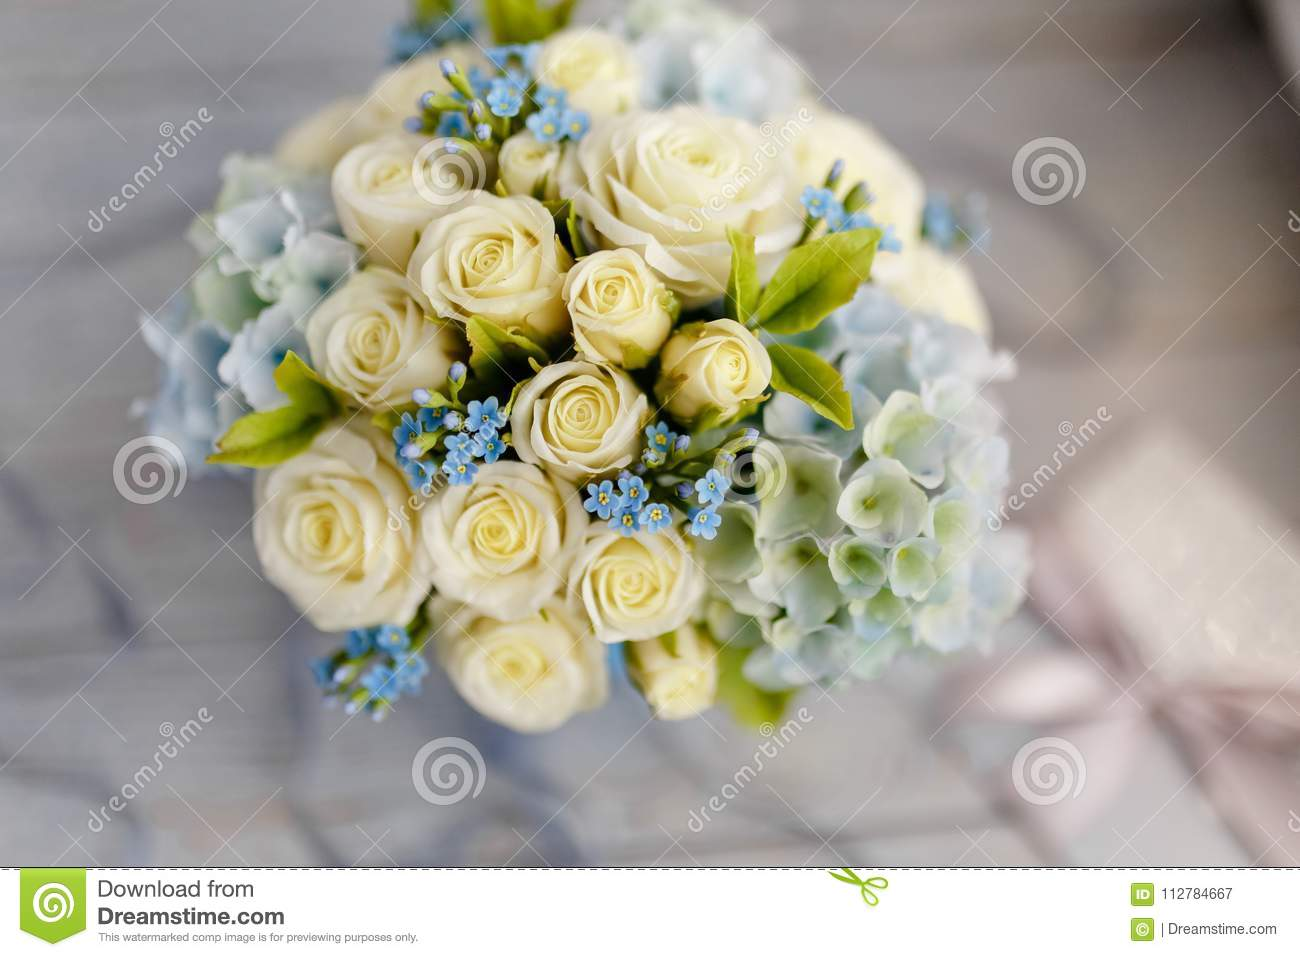 Blue And White Wedding Flowers Stock Image Image Of Cutout